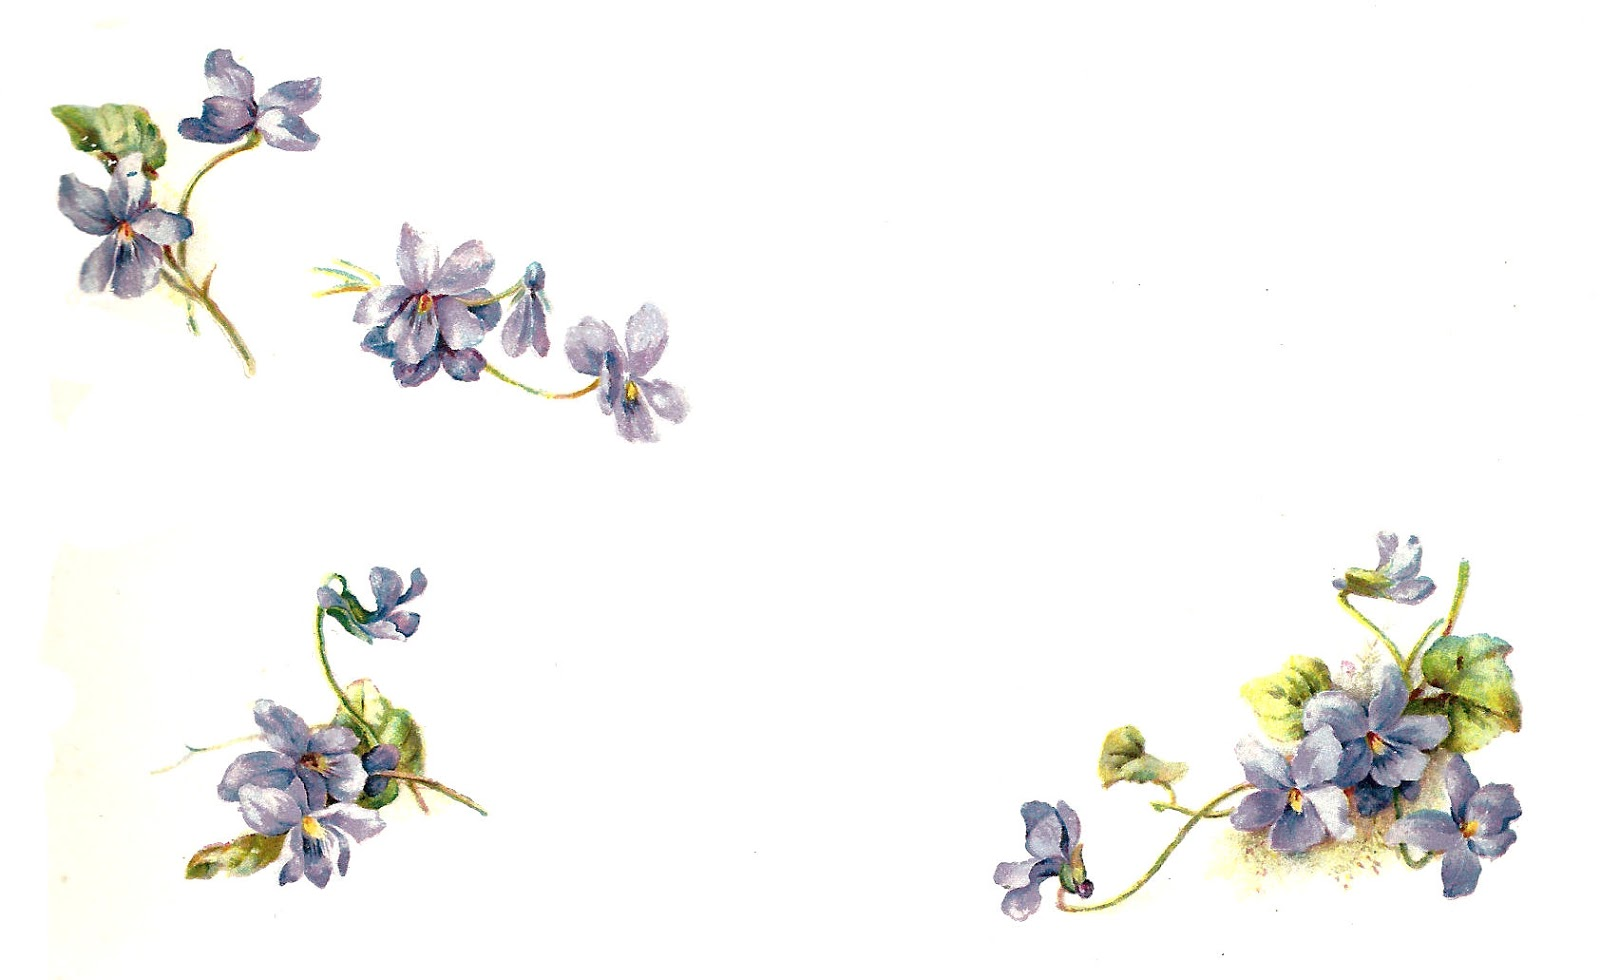 photograph relating to Free Printable Flower Borders called No cost Printable Flower Borders Clip Artwork N3 free of charge picture